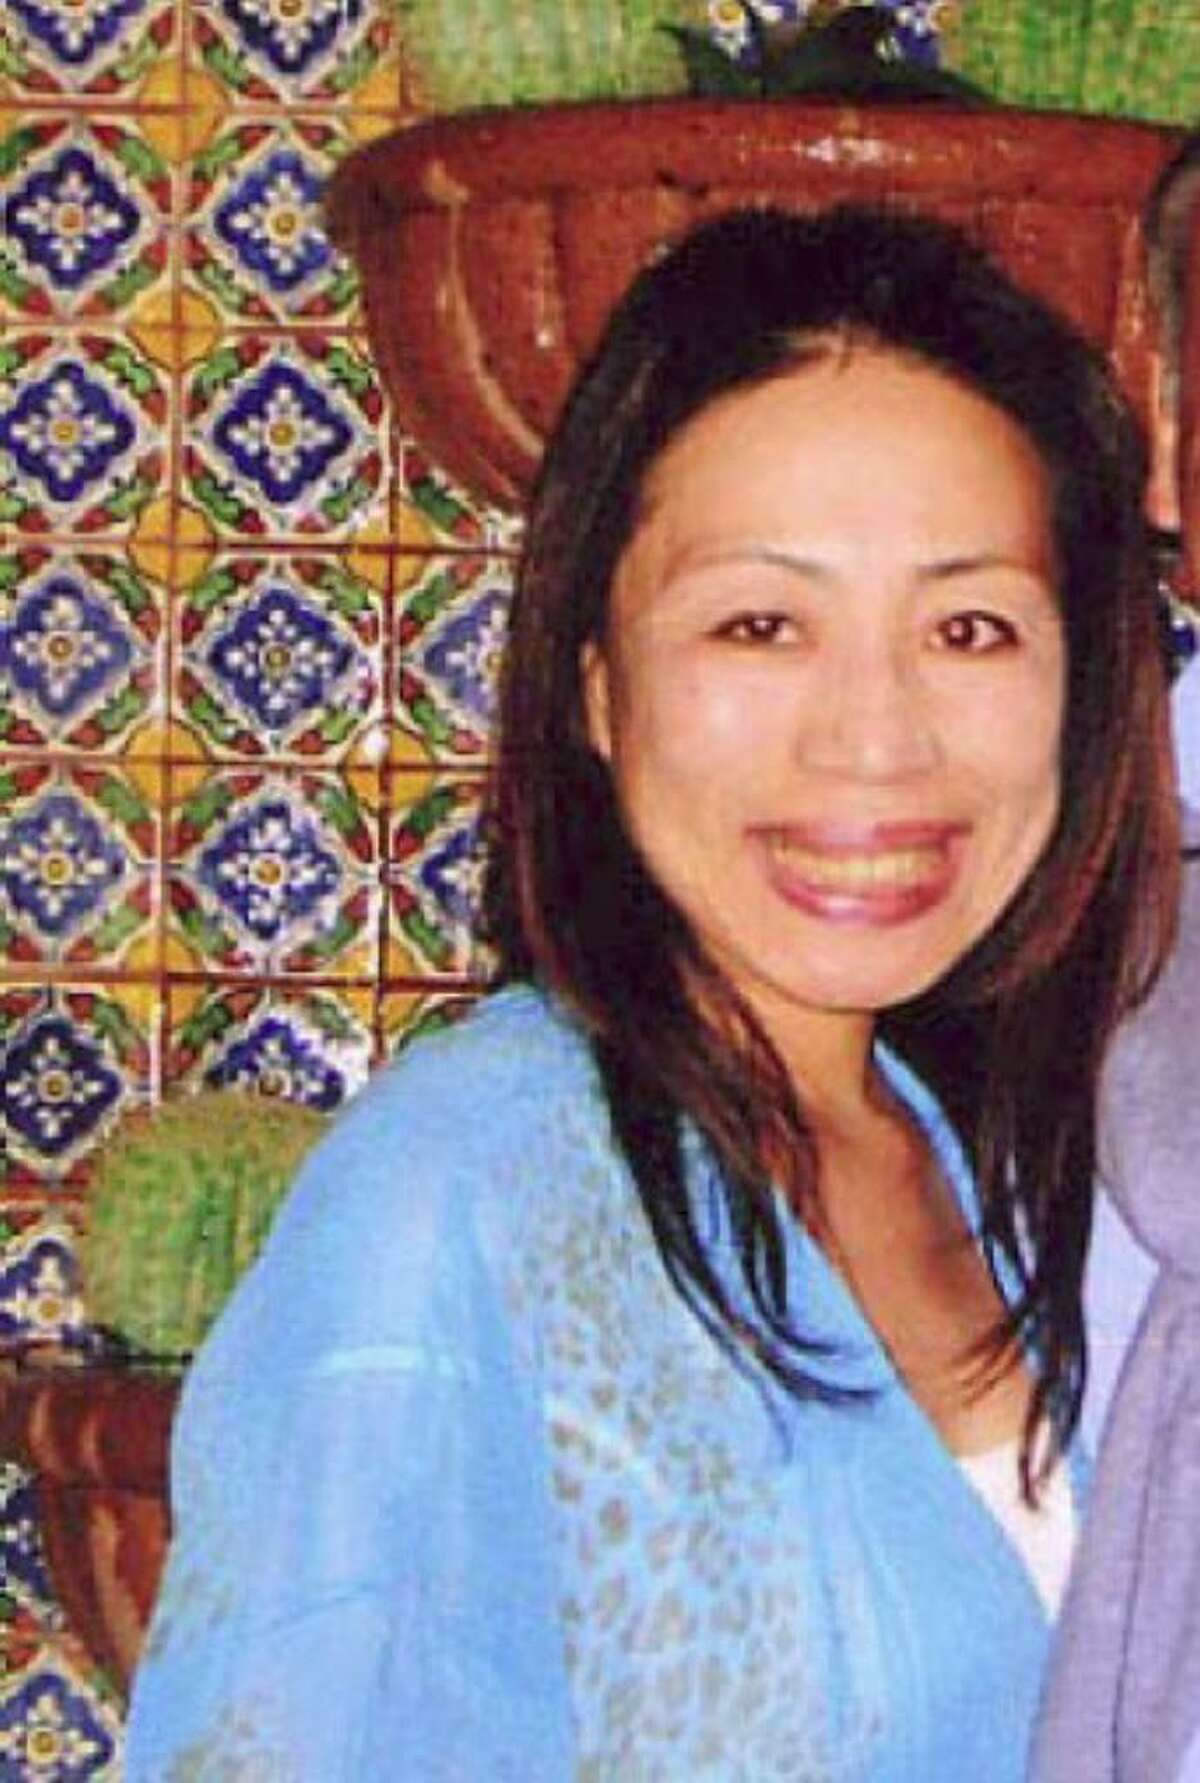 Westport police are searching for Michiko Kamhi, 48, after her vehicle turned up in Westport on Tuesday, April 20, 2010. Kamhi was reported missing by Greenwich police on Tuesday.